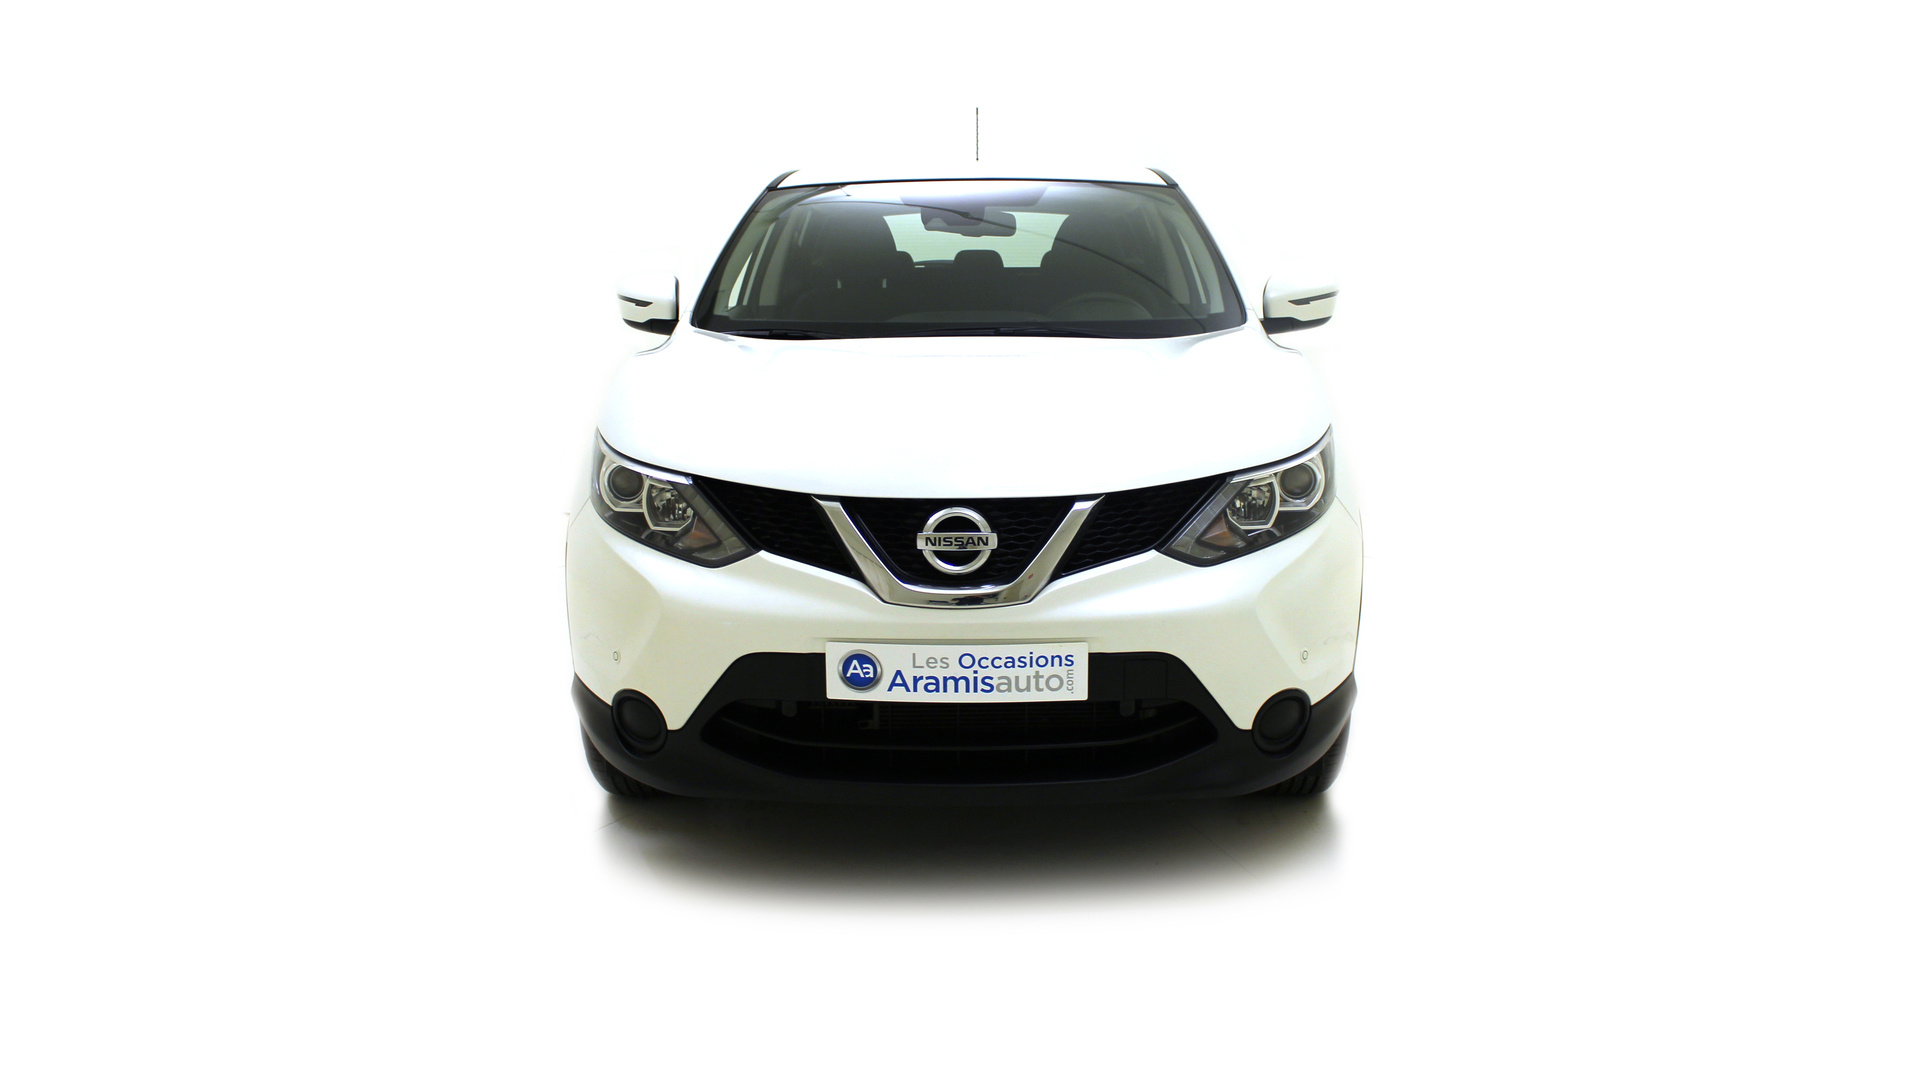 un nouveau nissan qashqai en 2014 entretien voiture html autos weblog. Black Bedroom Furniture Sets. Home Design Ideas